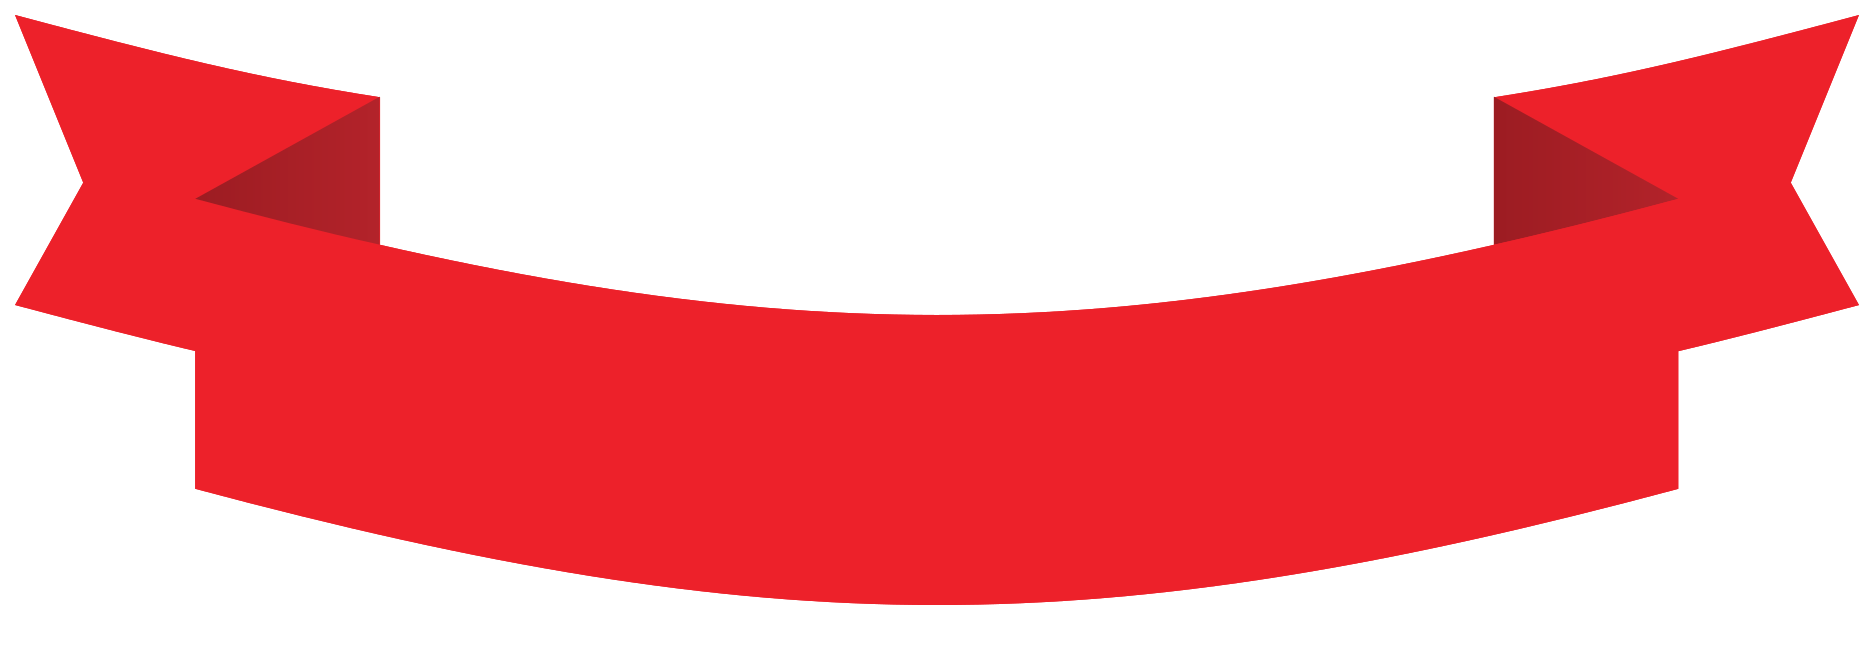 Red ribbon png